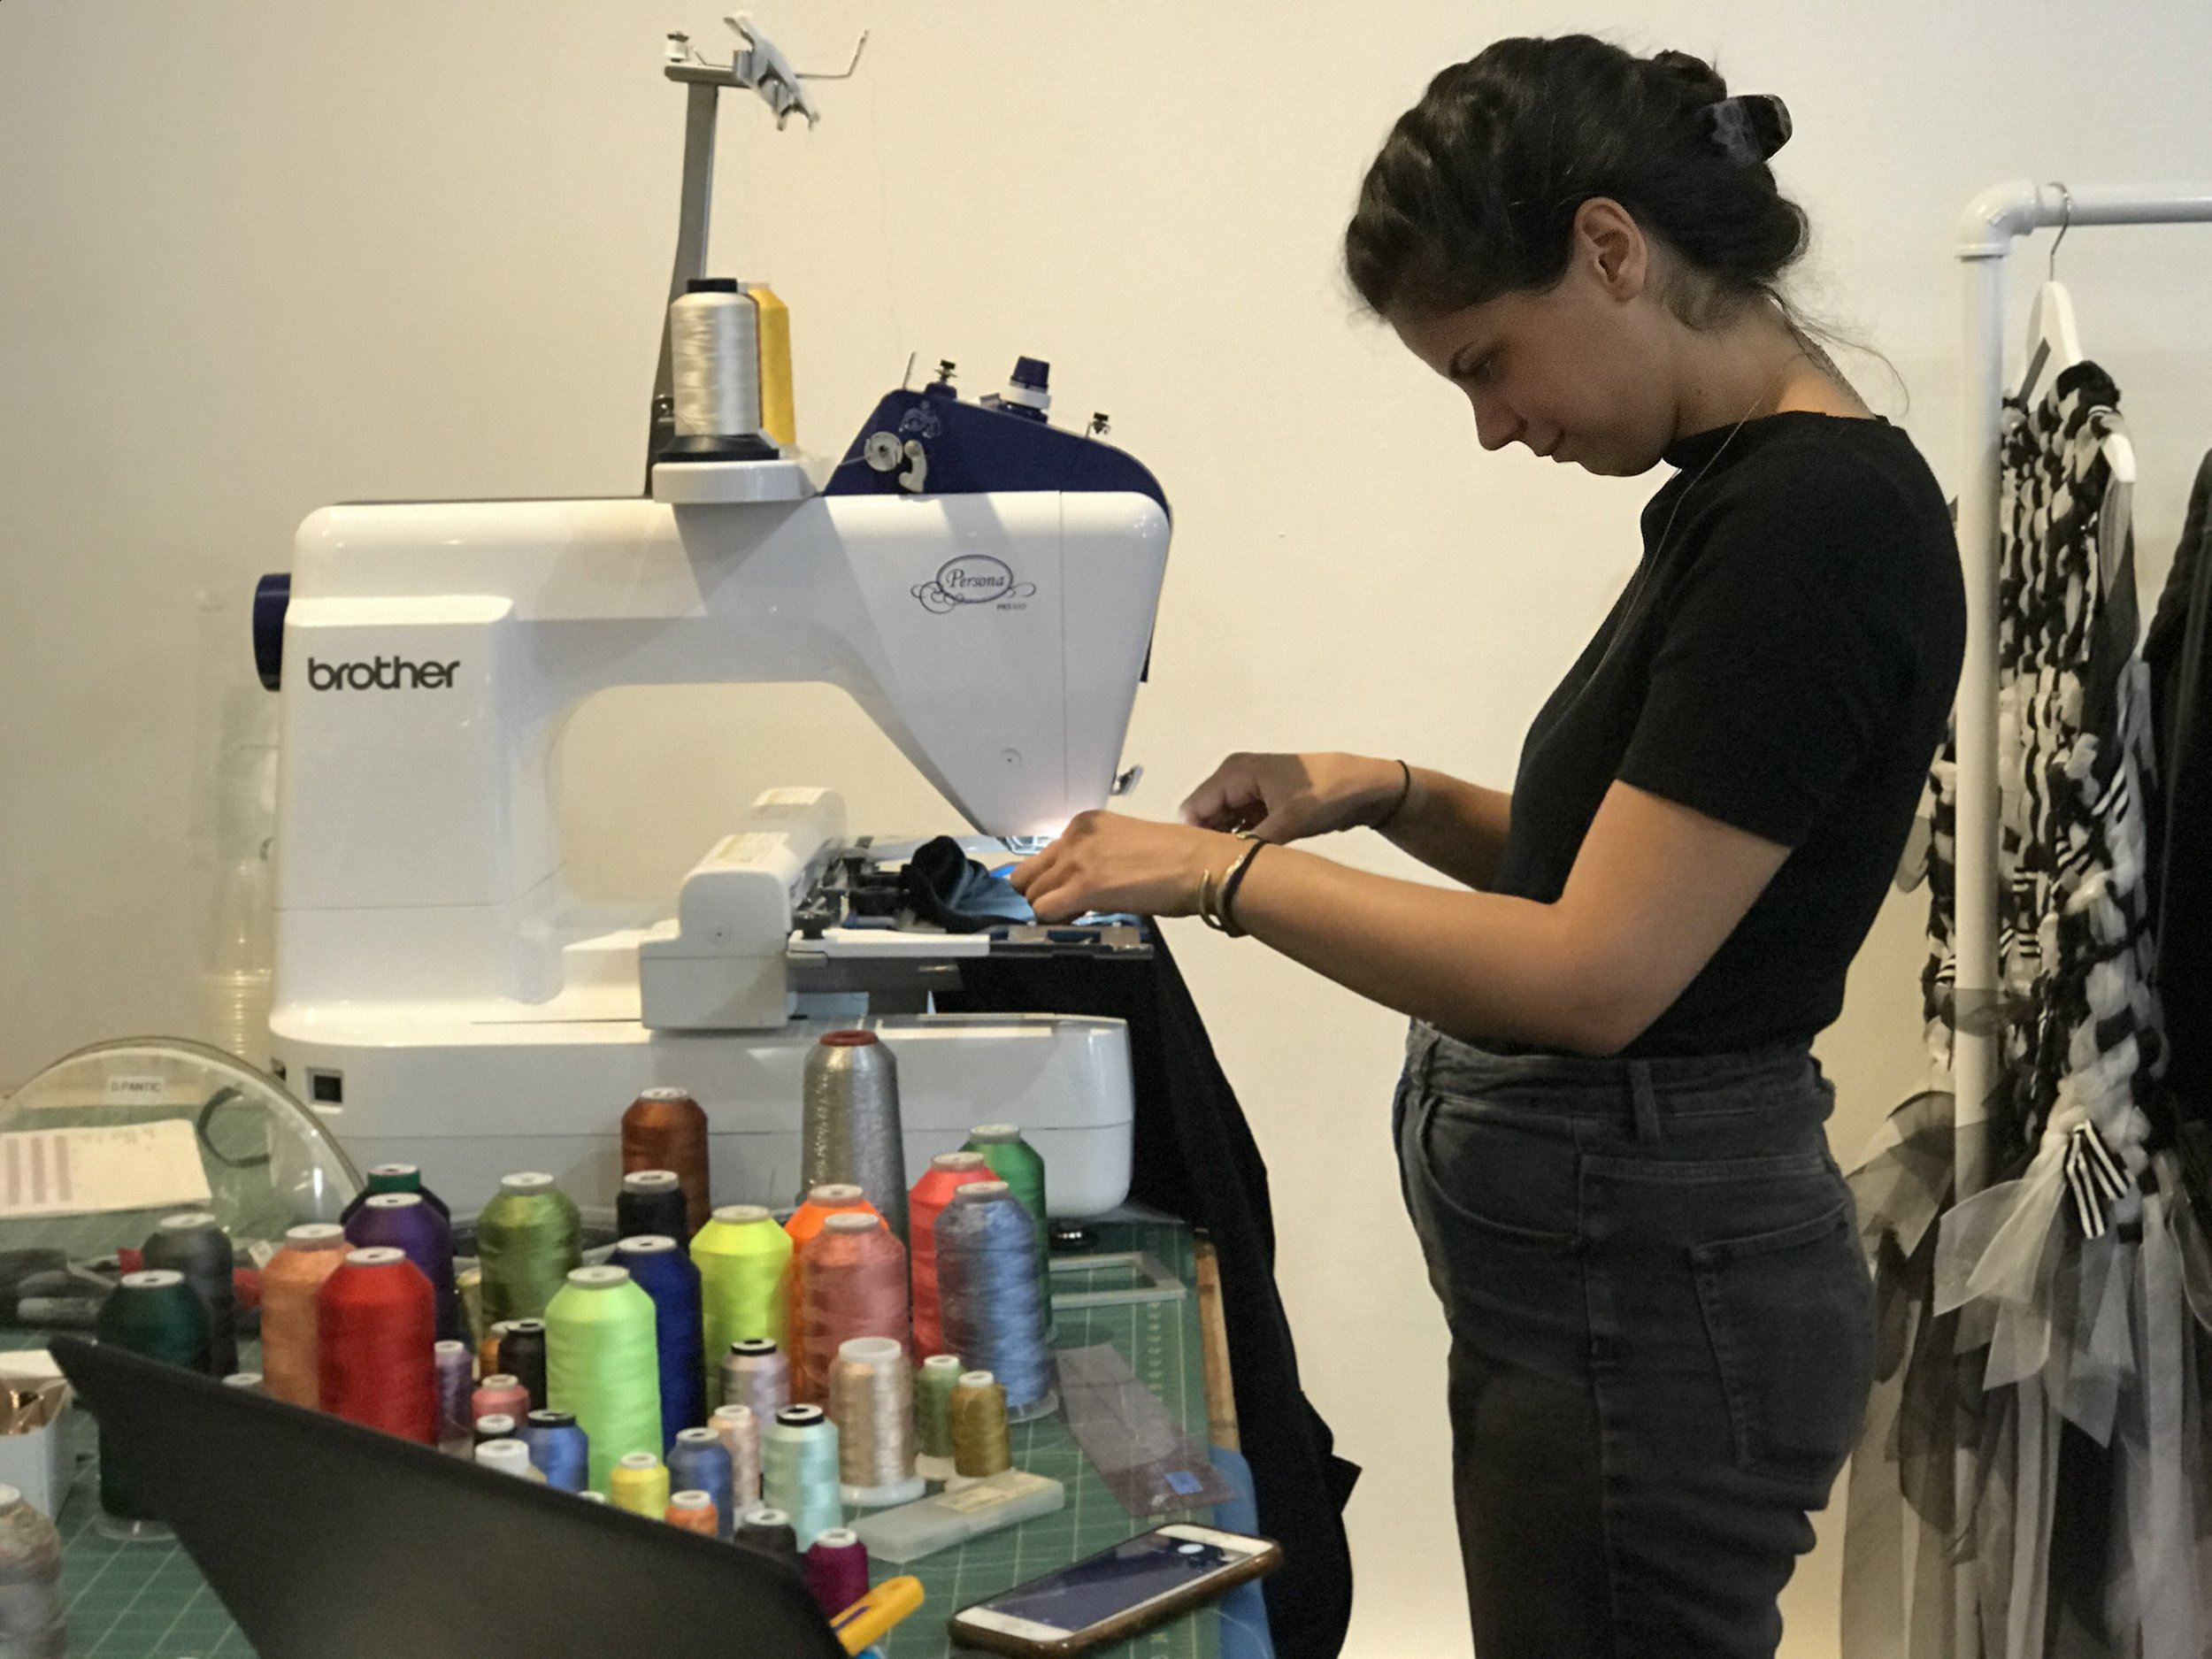 Working the embroidery station at  Mia Vesper' s store in New York City.